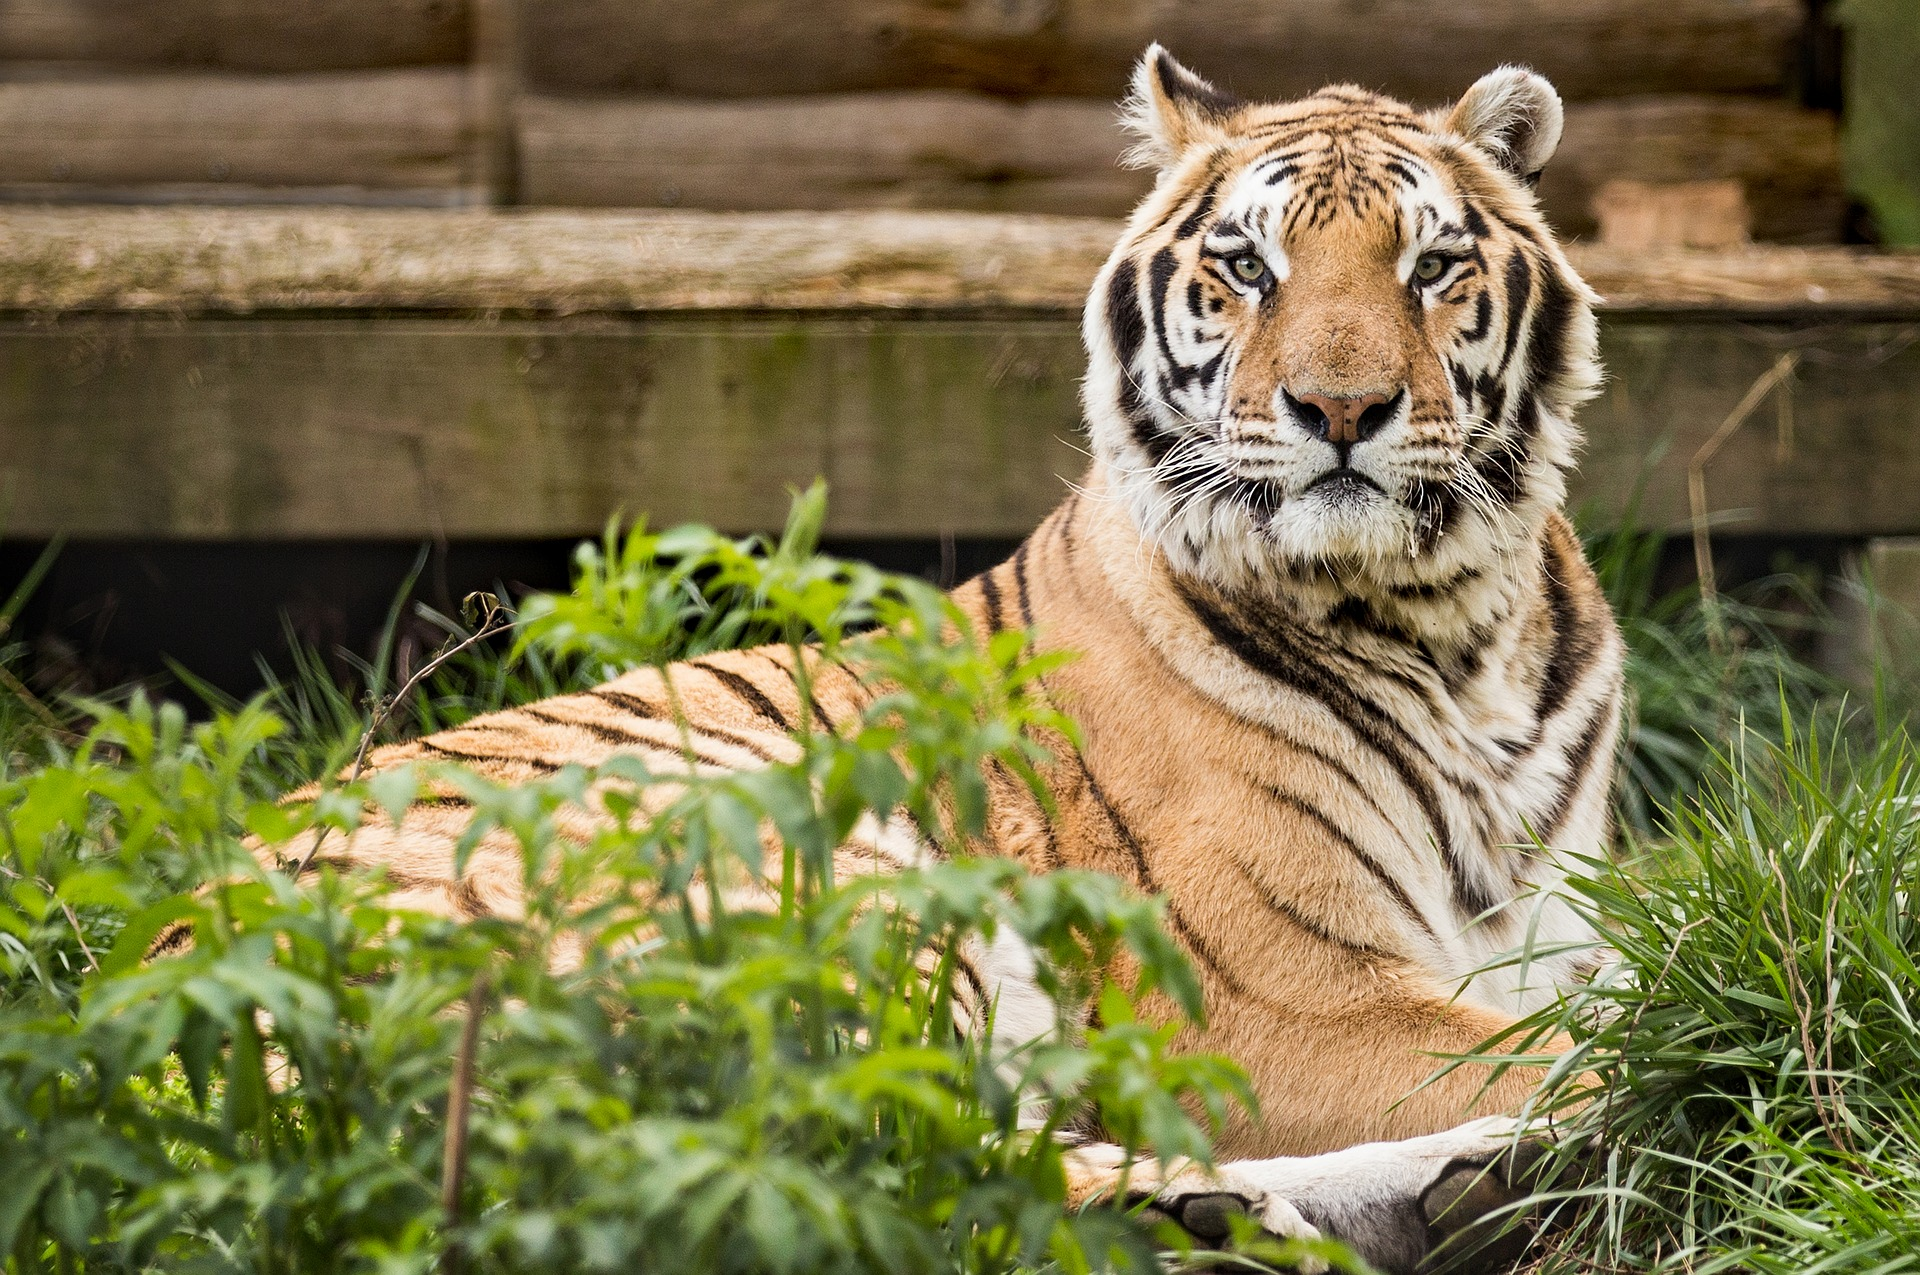 Fun fact: Tigers can comfortably fast for a few days before needing to refuel!